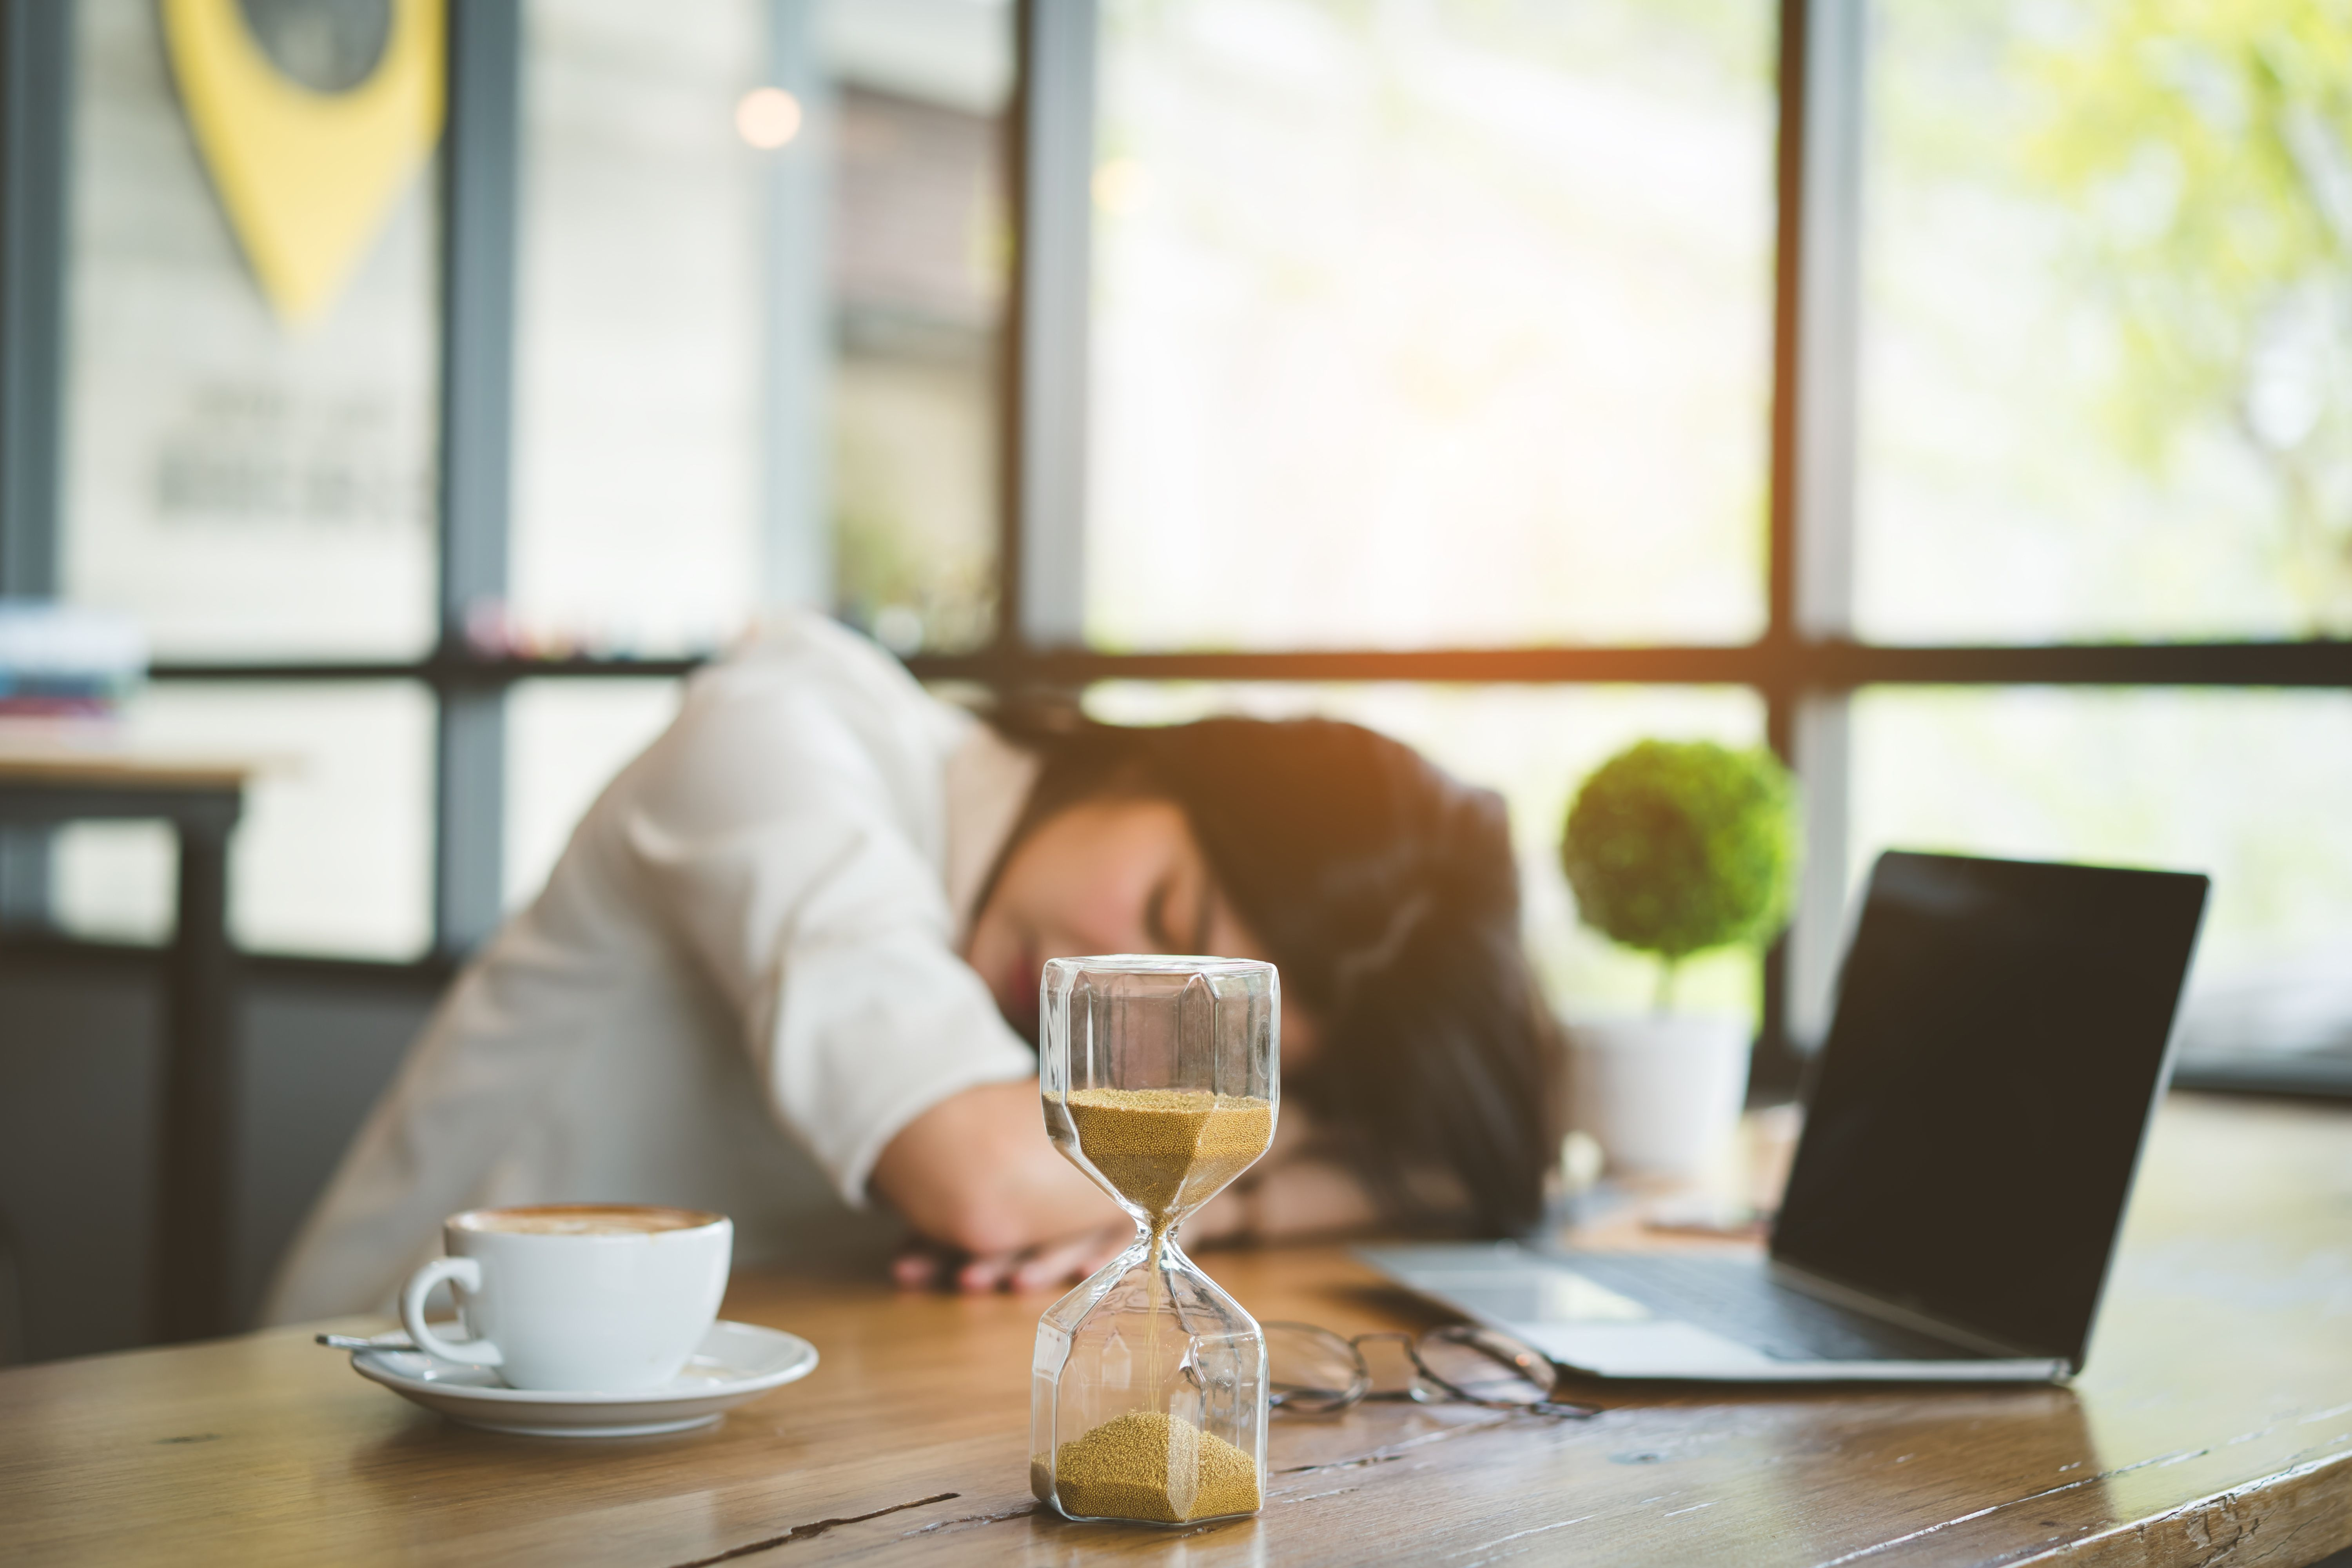 Young Woman Taking Nap By Laptop And Hourglass On Table In Cafe